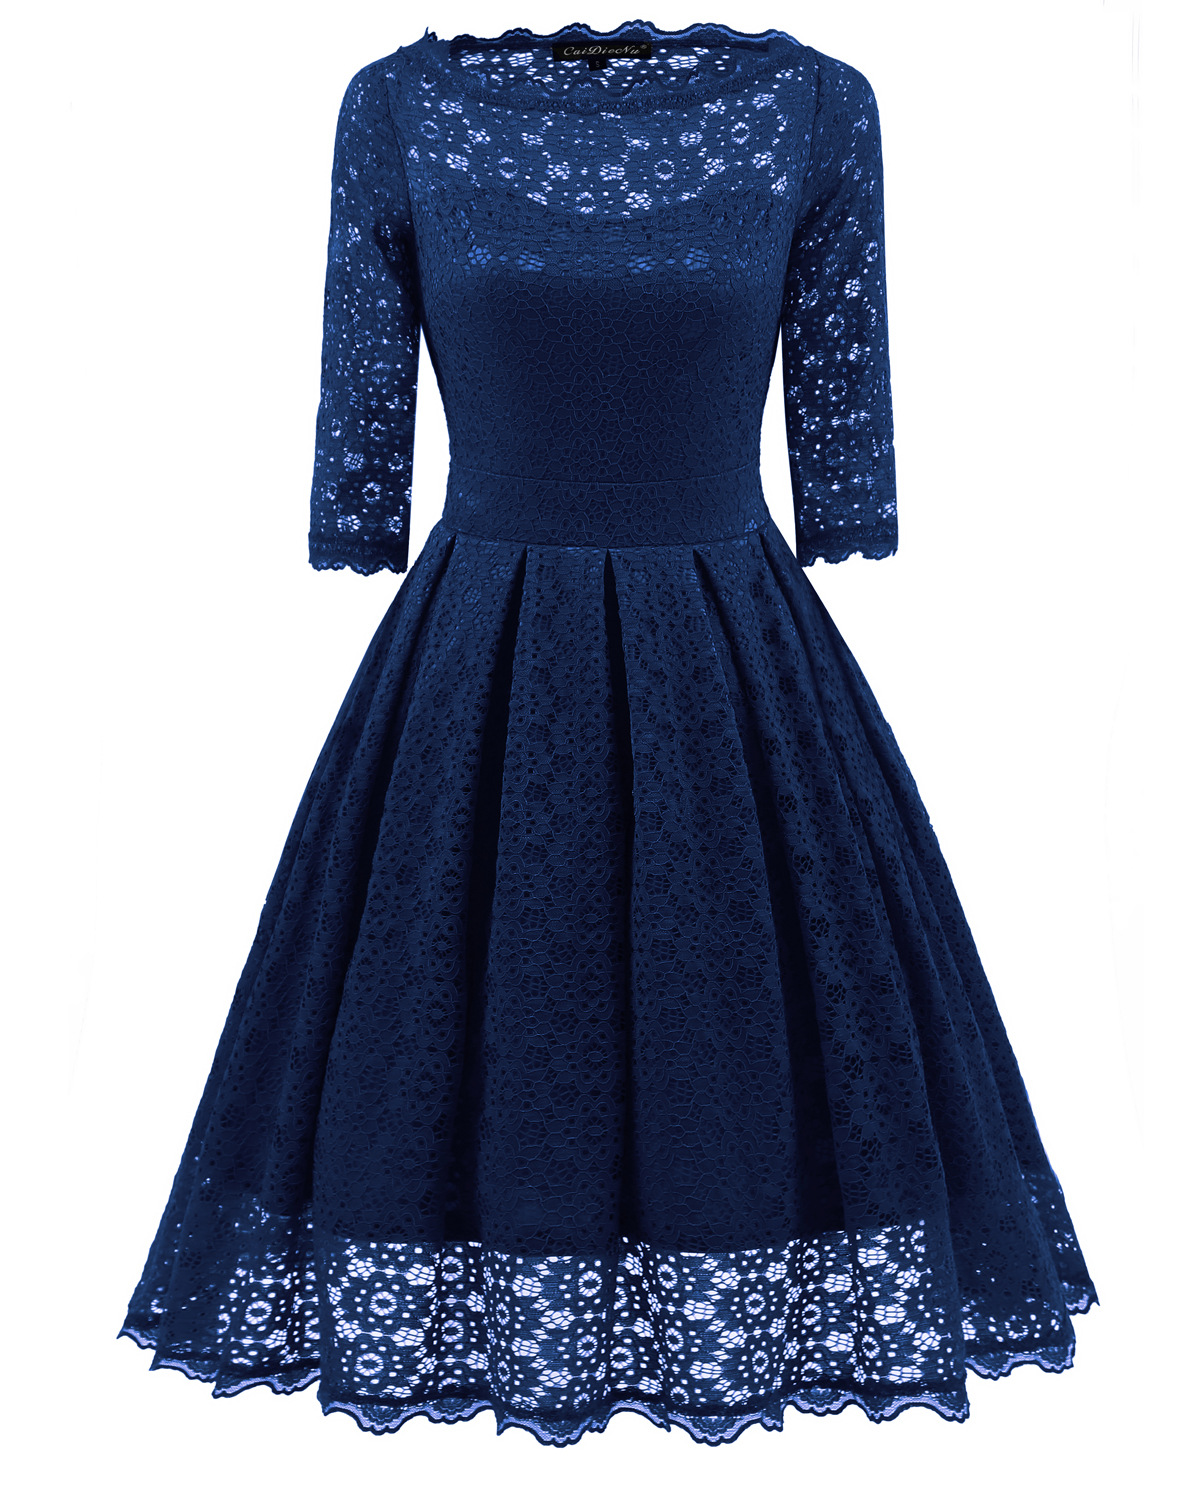 Women Floral Lace Dress Vintage 50s 60s 3/4 Sleeve Rockabilly Cocktail Evening Party Swing Dress navy blue